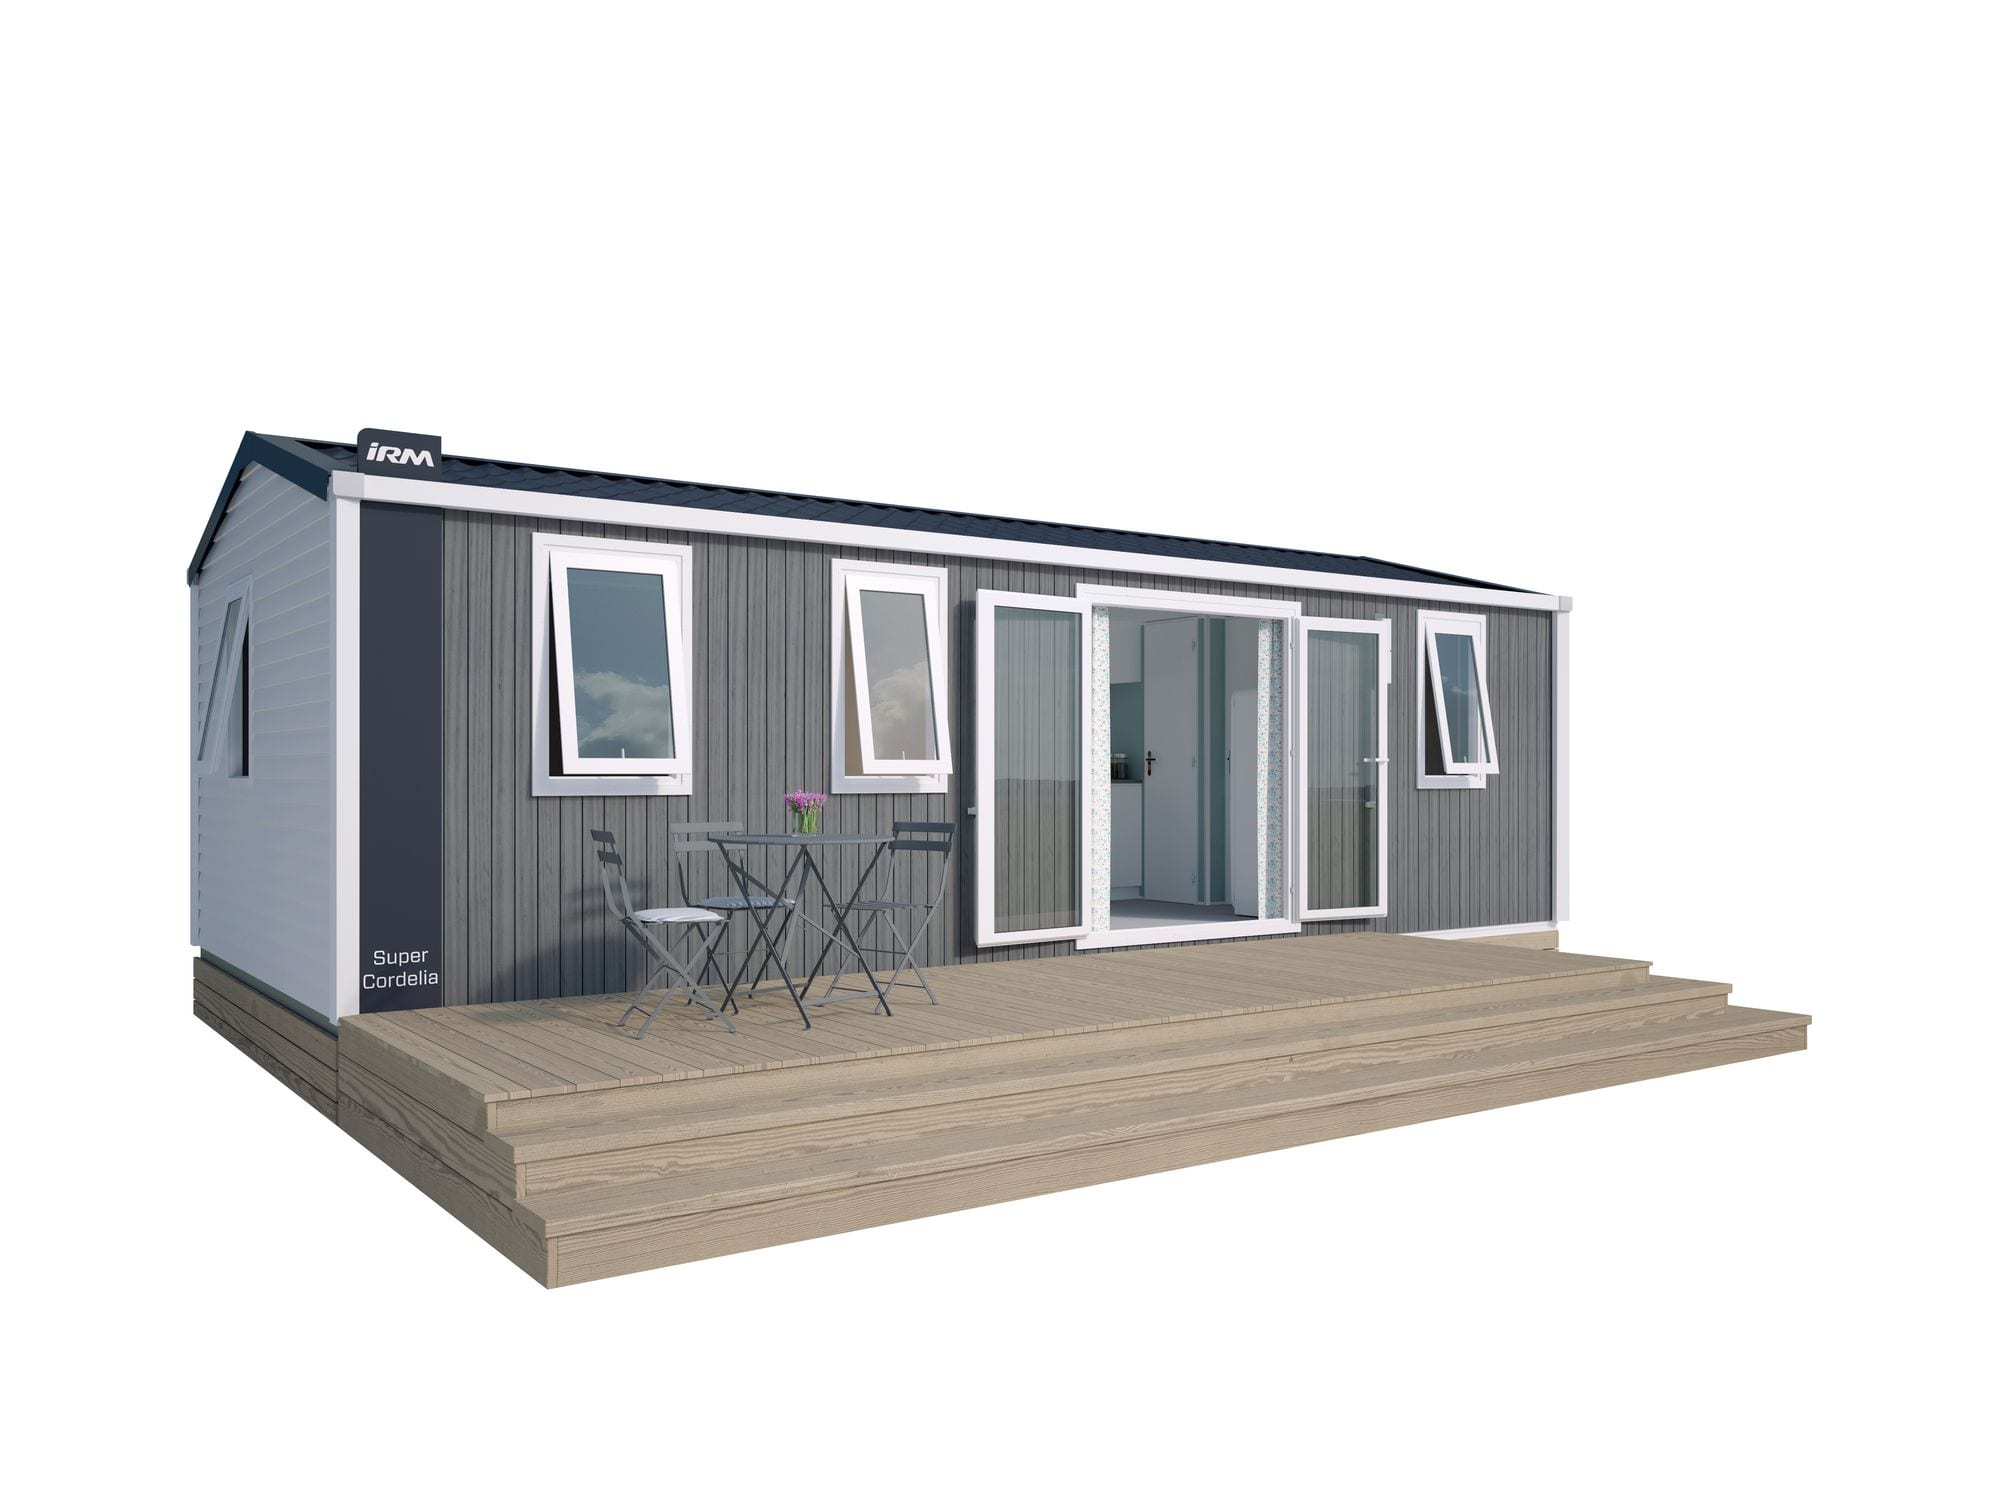 Irm super cordelia 3 mobil home neuf 2018 zen mobil - Mobil home neuf 3 chambres ...